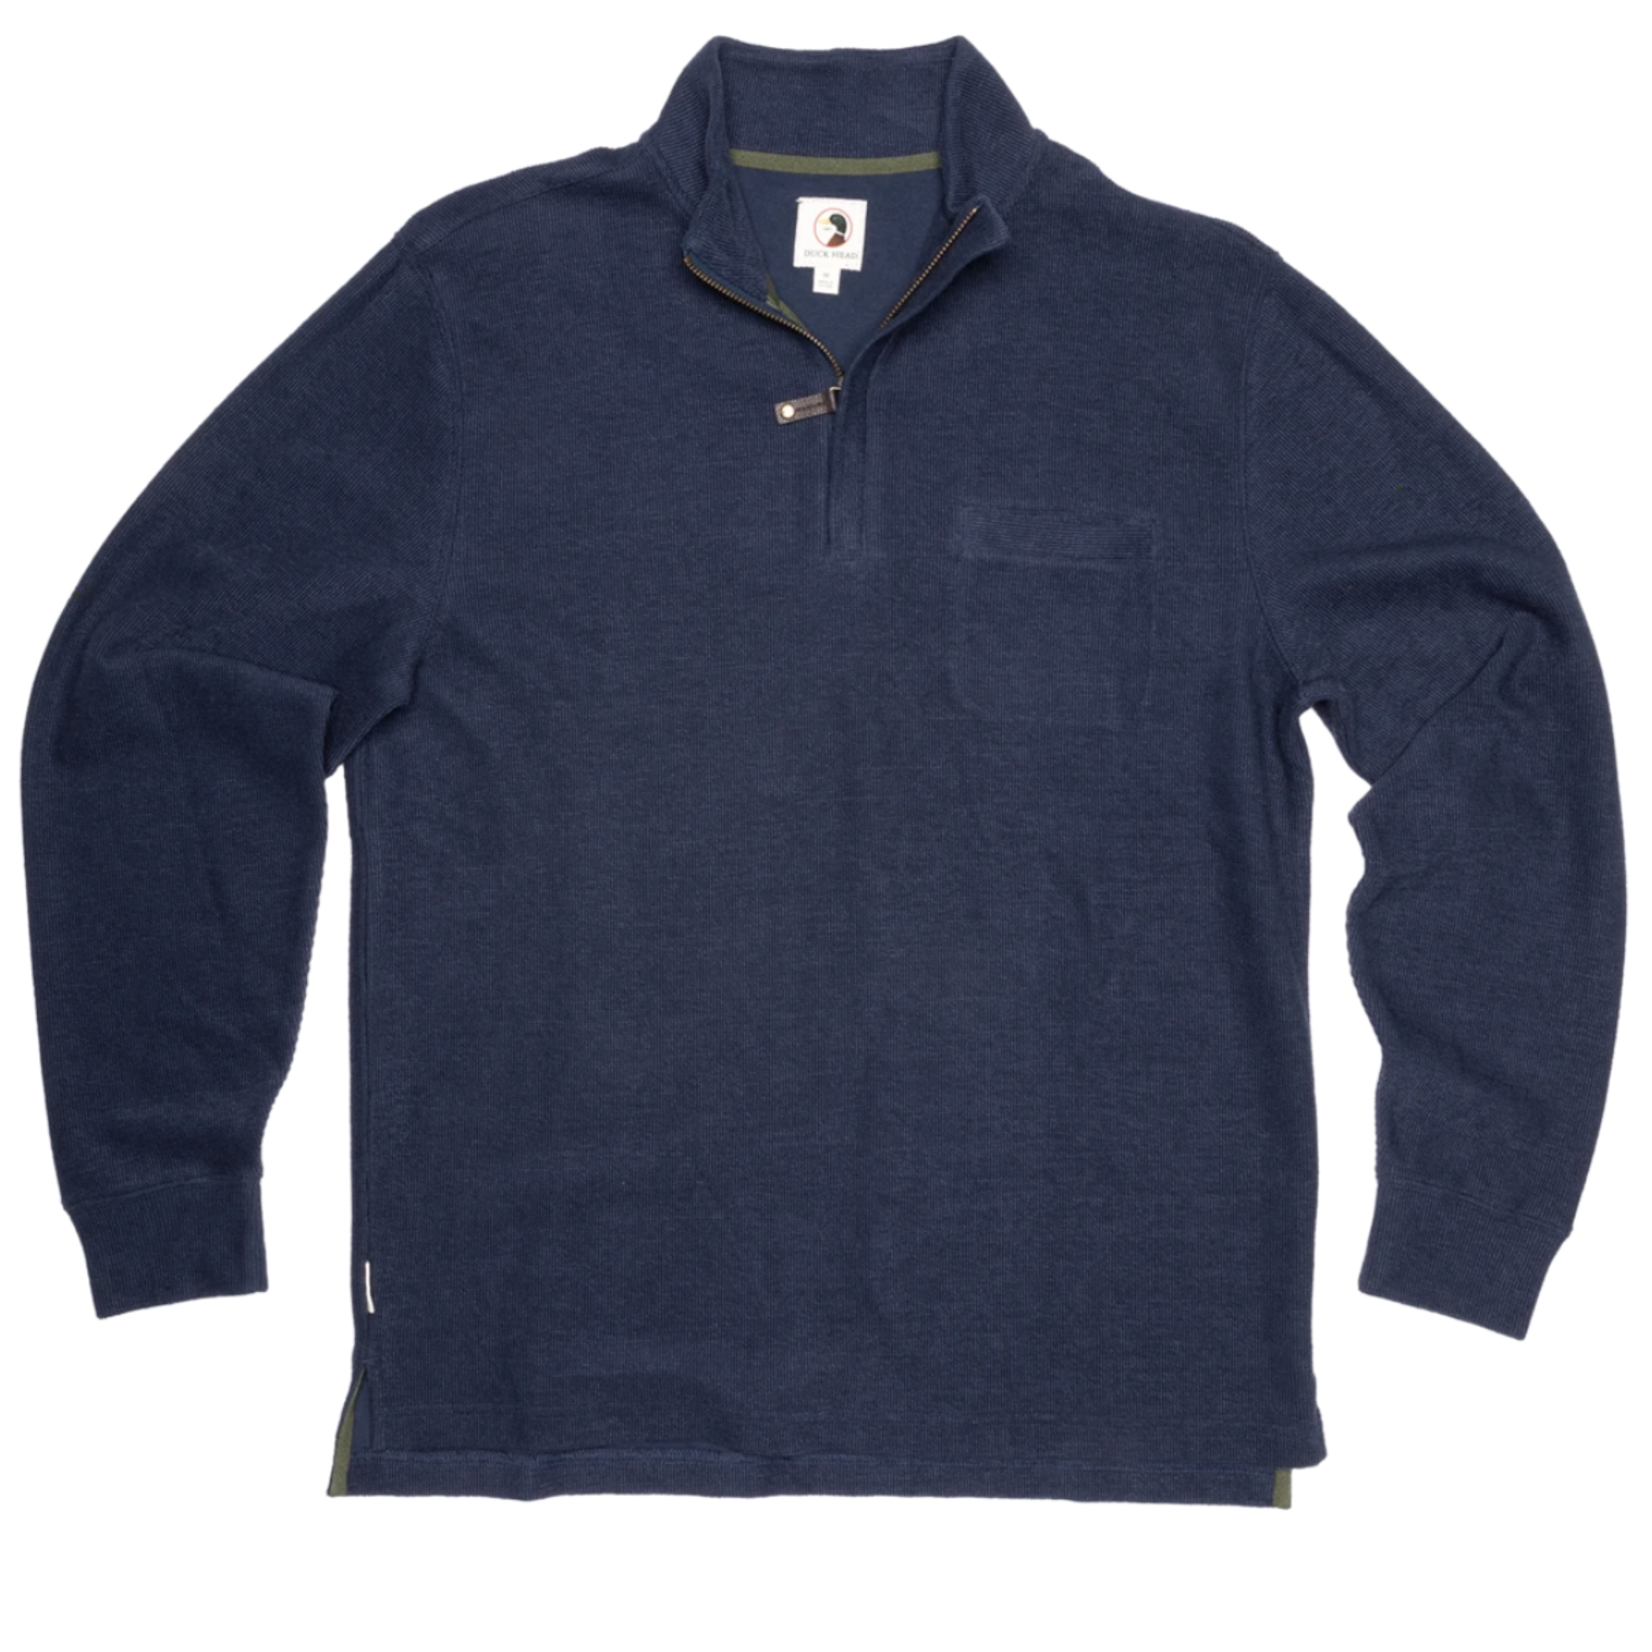 Duck Head Covey 1/4 Zip Pullover